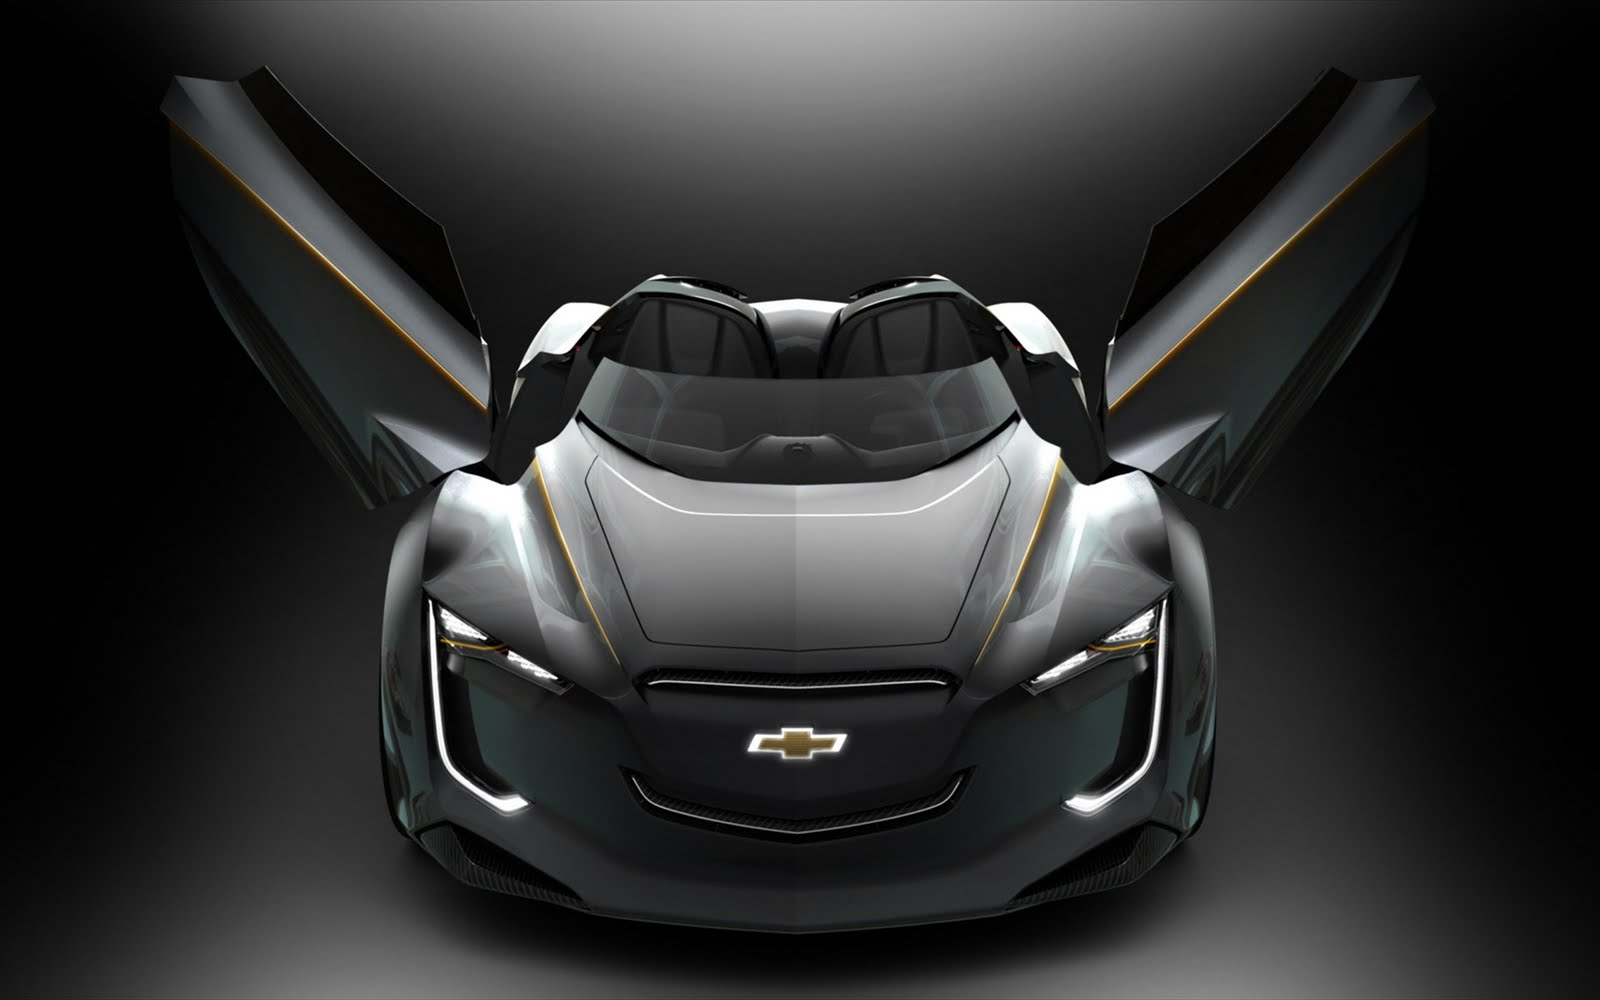 All Chevy chevy concepts : US NAVY JEEP: CHEVY channels the BATMOBILE in designing a Carbon ...